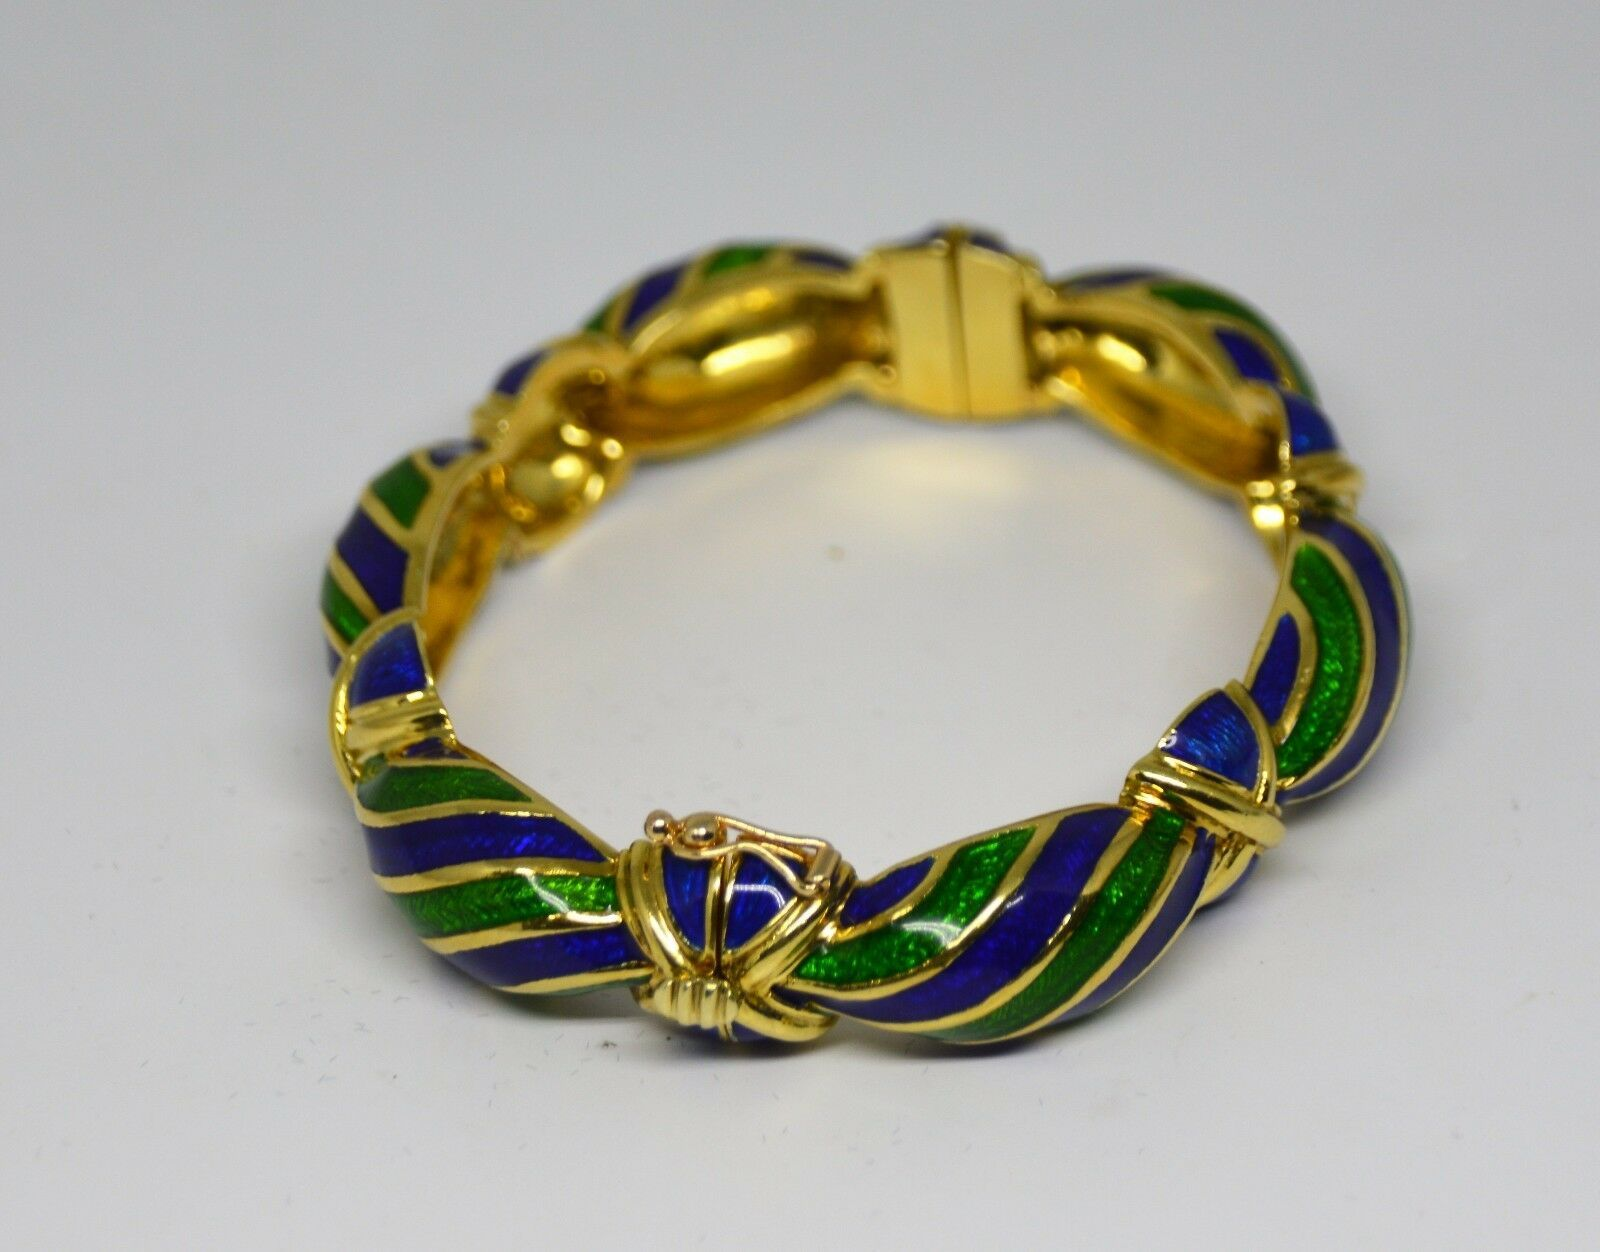 Vintage Tiffany & Co Blue Green Enamel & 18K yellow Gold Hinged Curved Bangle